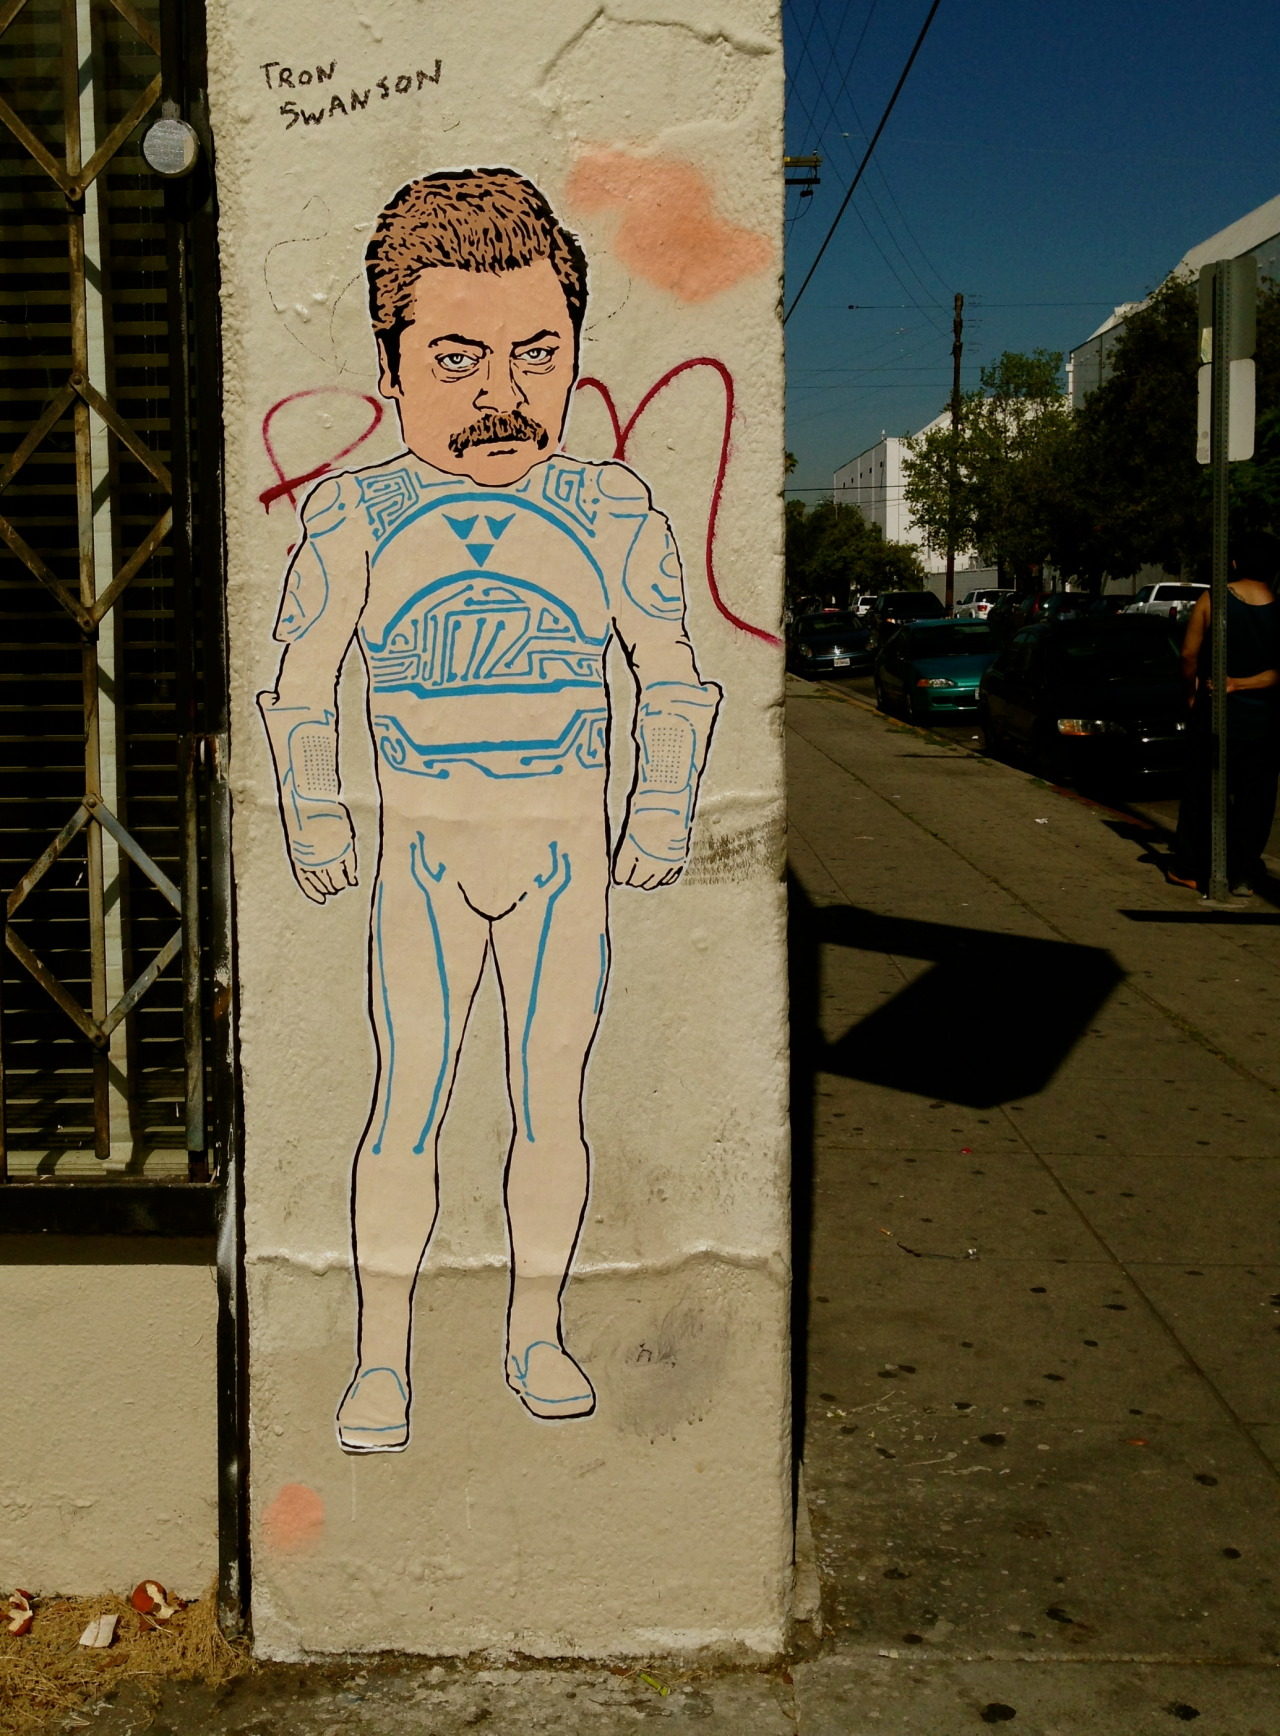 tomhanksy:  Tron Swanson. Hollywood, CA.  YES YES YES YES YES YES YES YES YES YES YES YES YES YES YES YES YES YES YES YES YES YES YES YES YES YES YES YES YES YES YES YES YES YES YES YES YES YES YES YES YES YES YES YES YES YES YES YES YES YES YES YES YES YES YES YES YES YES YES YES YES YES YES YES YES YES YES YES YES YES YES YES YES YES YES YES YES YES YES YES YES YES YES YES YES YES YES YES YES YES YES YES YES YES YES YES YES YES YES YES YES YES YES YES YES YES YES YES YES YES YES YES YES YES YES YES YES YES YES YES YES YES YES YES YES YES YES YES YES YES YES YES YES YES YES YES YES YES YES YES YES YES YES YES YES YES YES YES YES YES YES YES YES YES YES YES